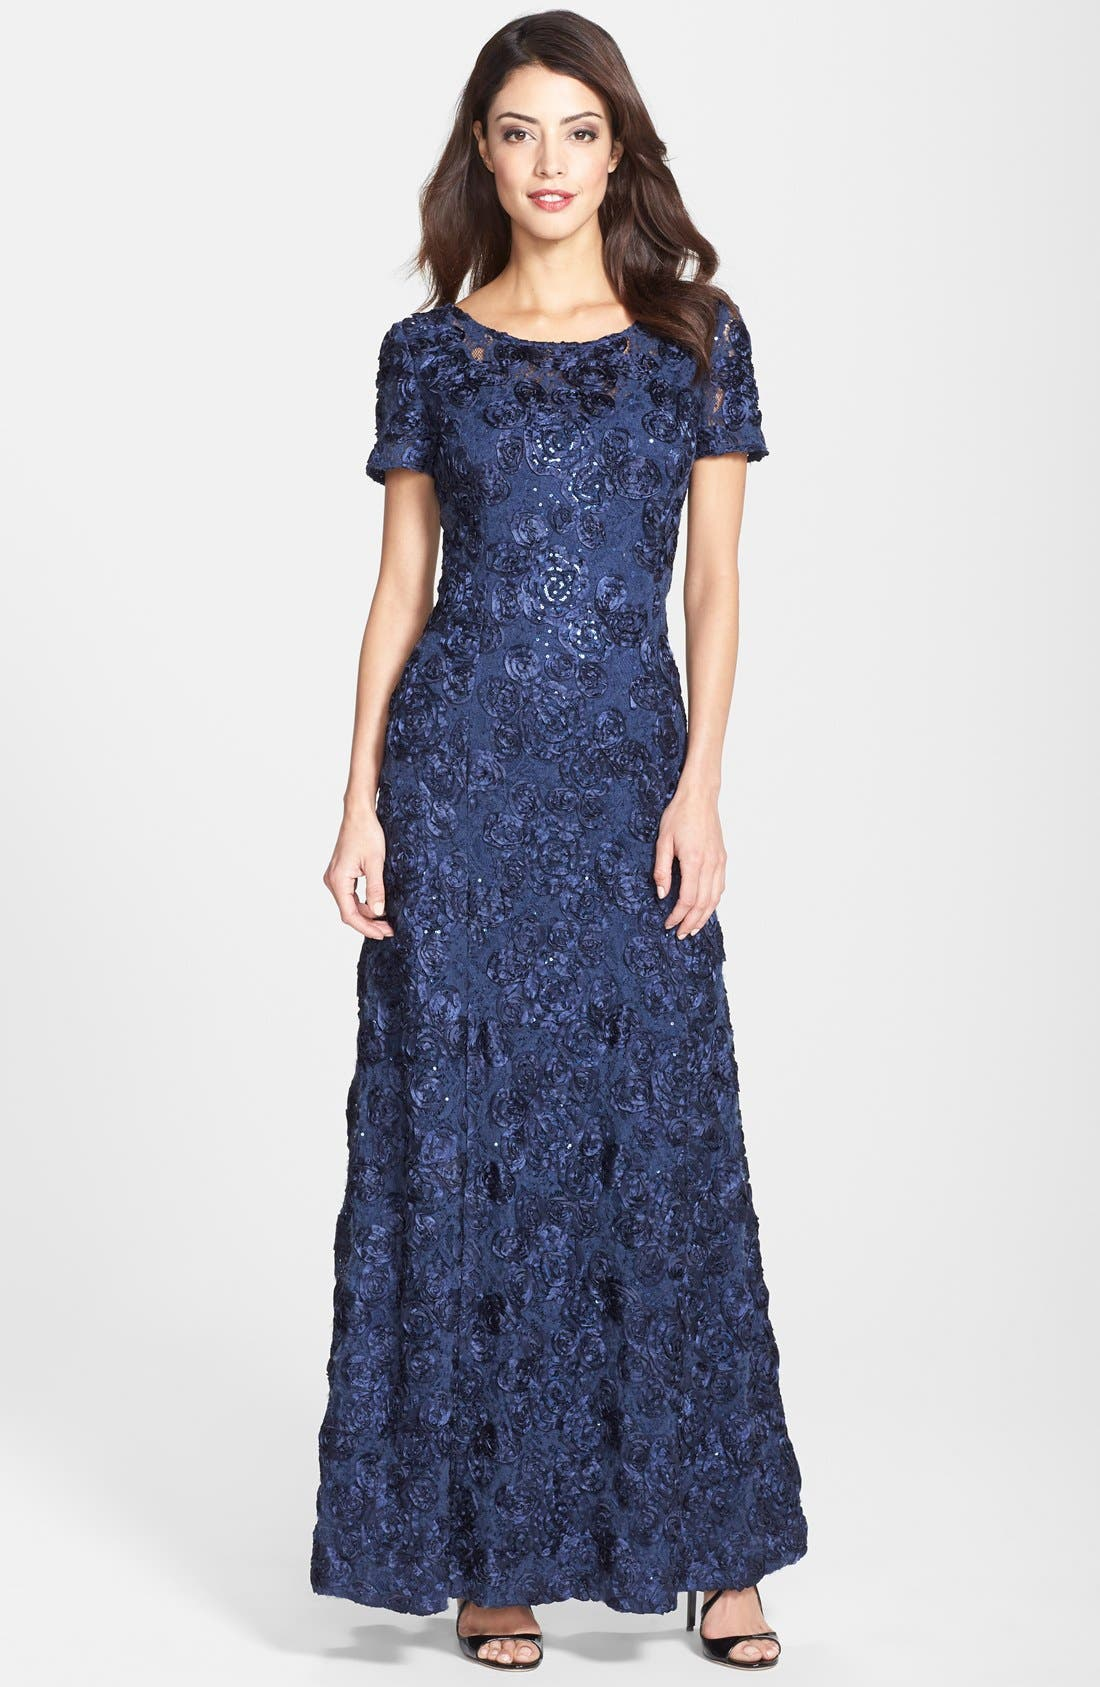 ALEX EVENINGS, Embellished Lace Gown, Main thumbnail 1, color, NAVY